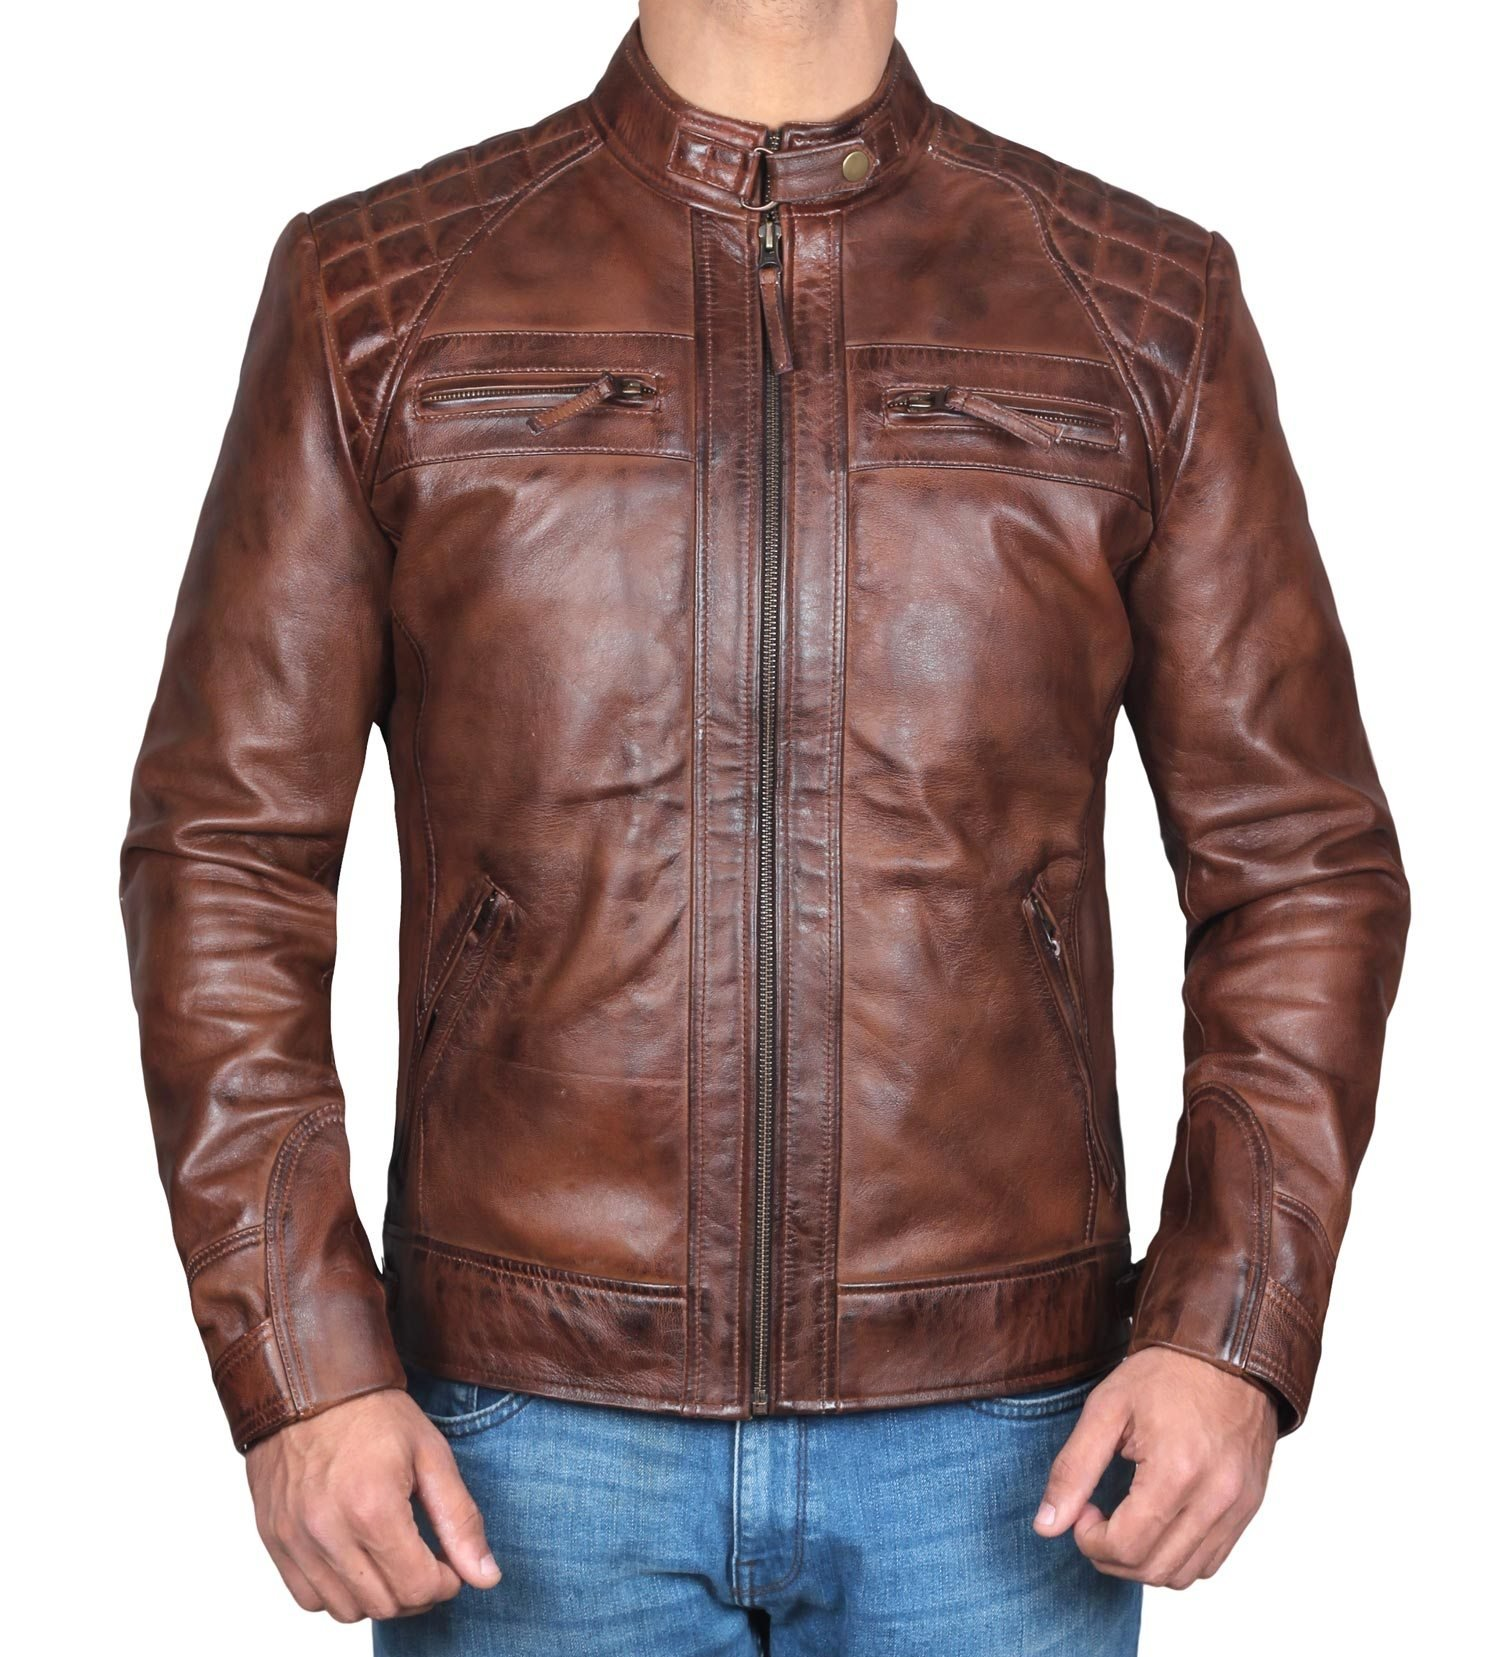 Mens Johnson Slim Fit Quilted Distressed Brown Real Leather Biker Jacket - M by Decrum